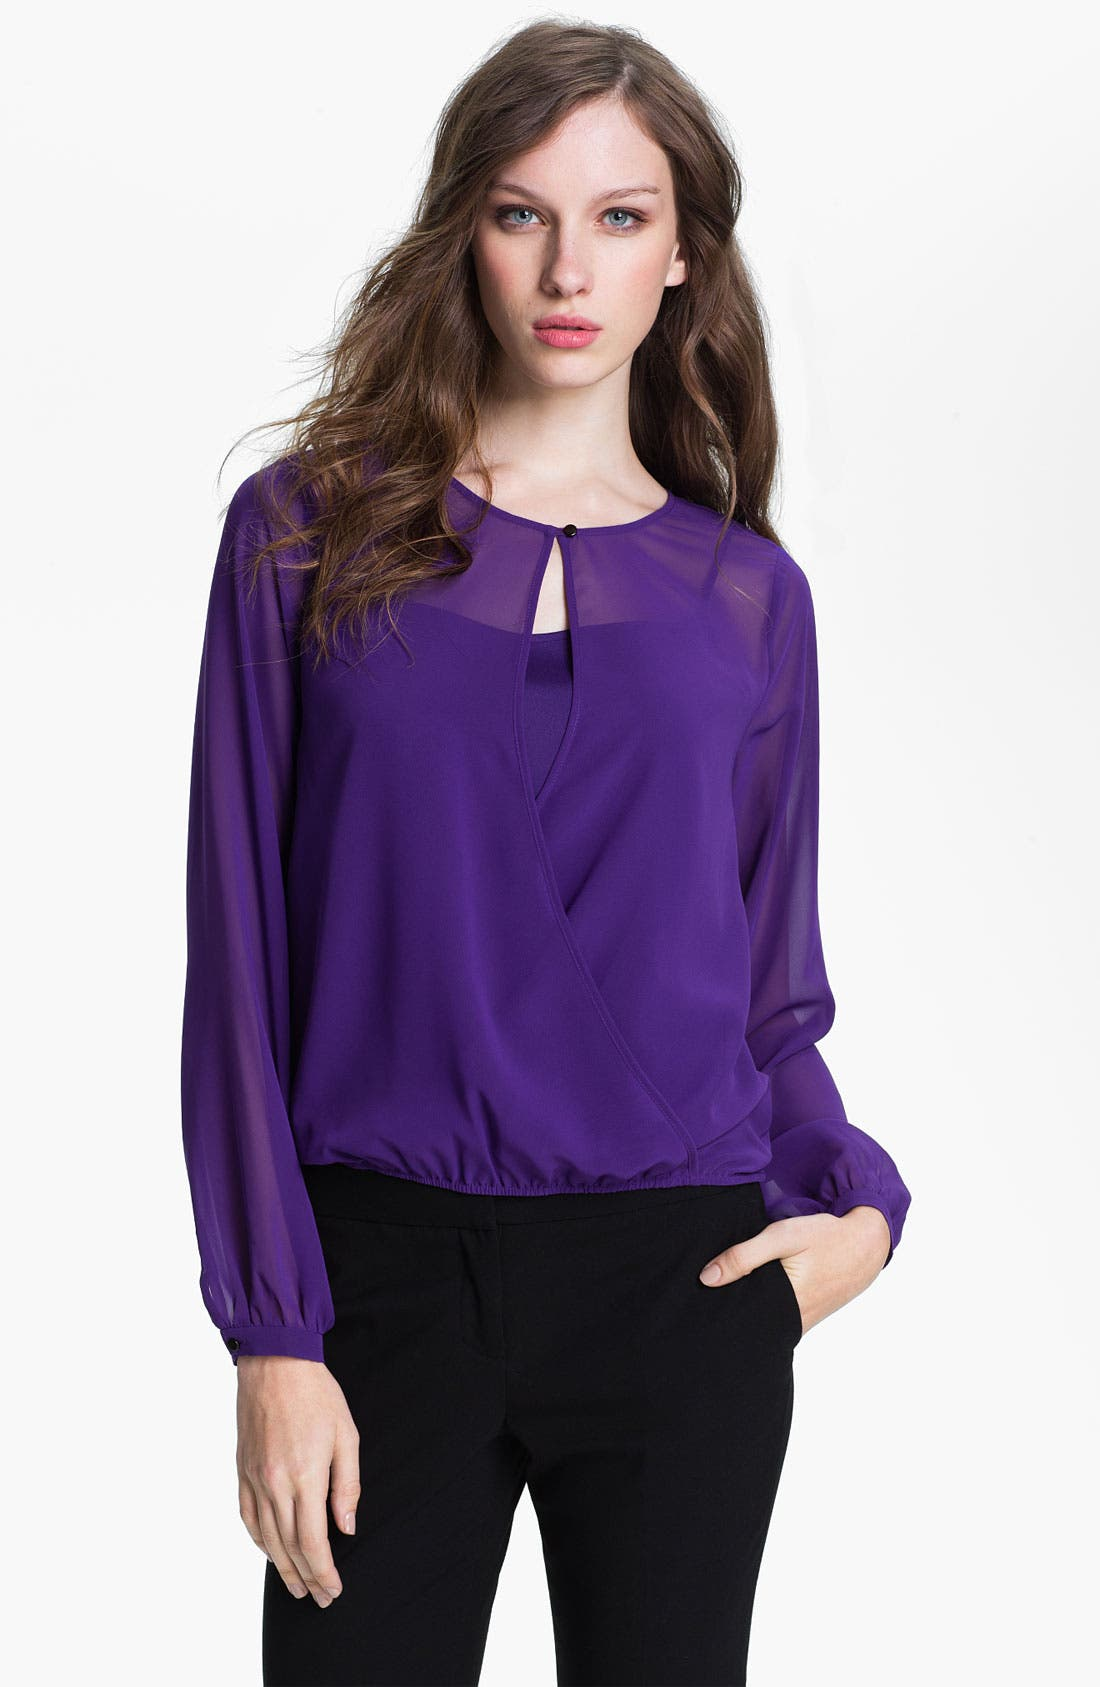 Alternate Image 1 Selected - Kenneth Cole New York 'Candace' Blouse & Camisole